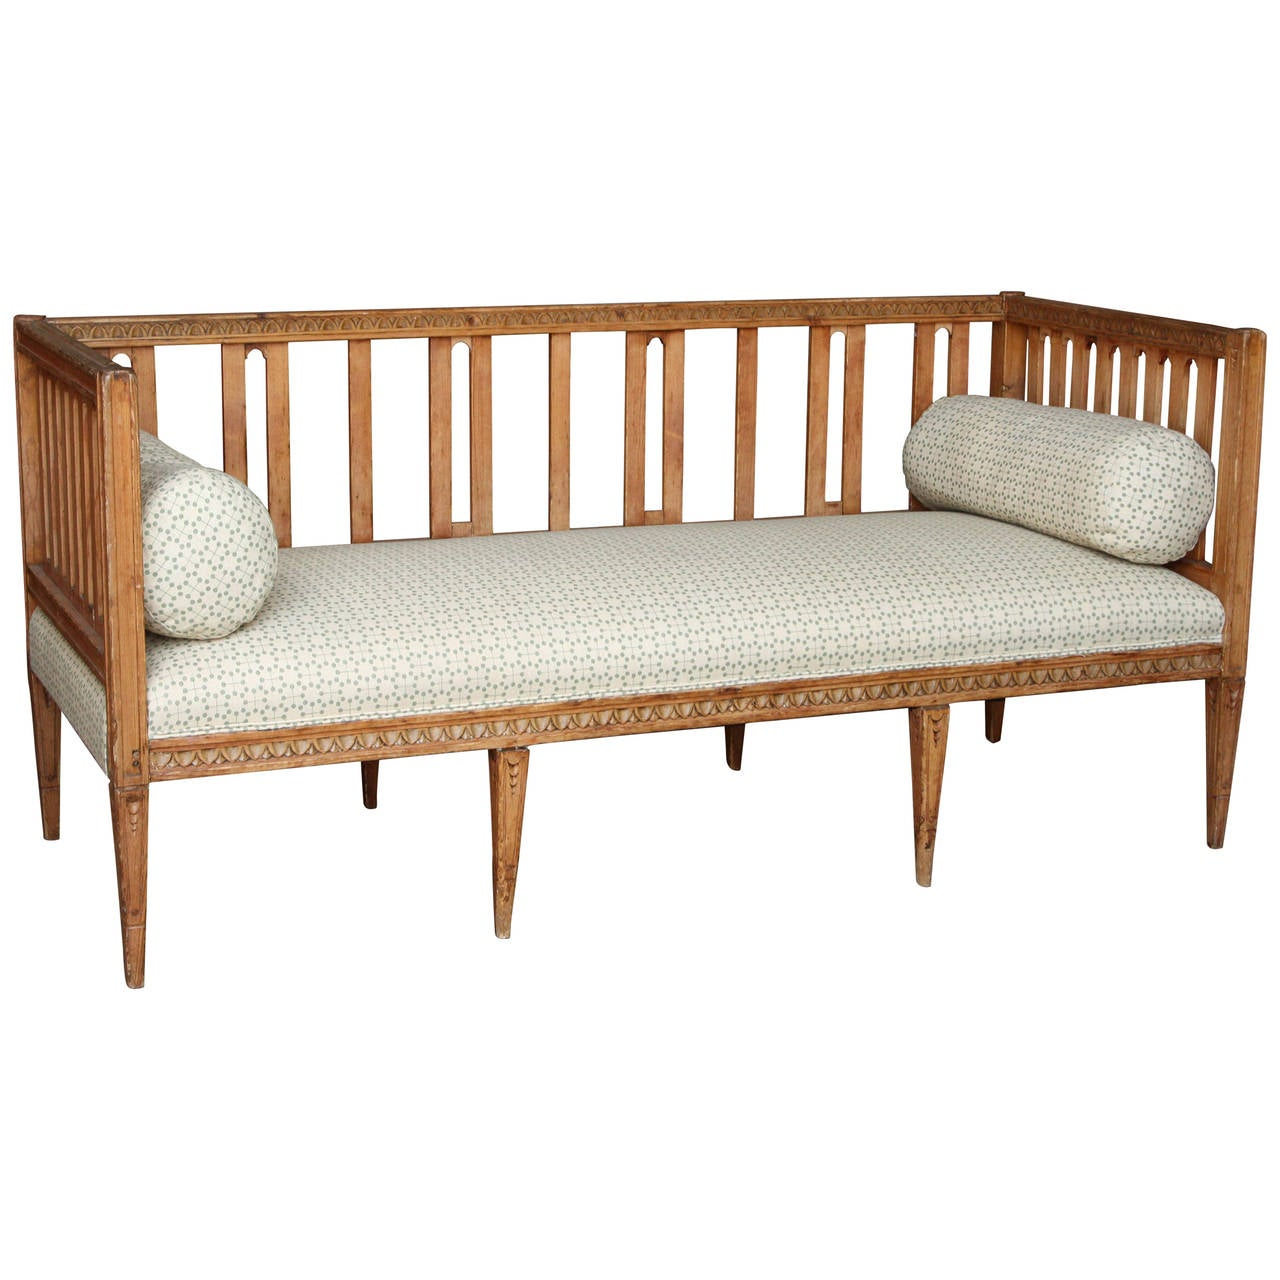 Antique Country Swedish Bench At 1stdibs